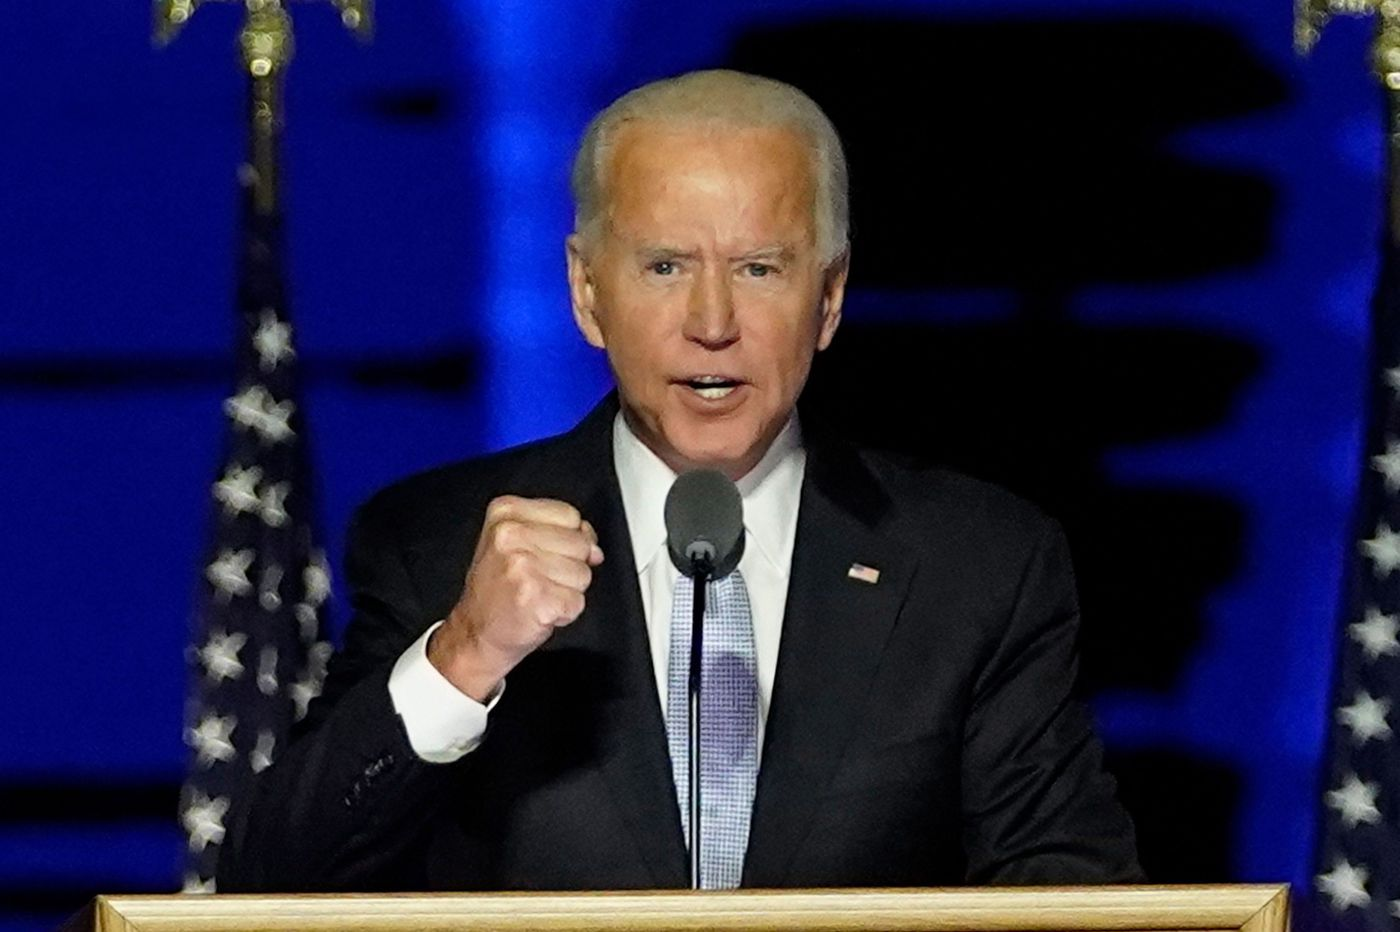 President-elect Joe Biden announces coronavirus task force made up of physicians and health experts